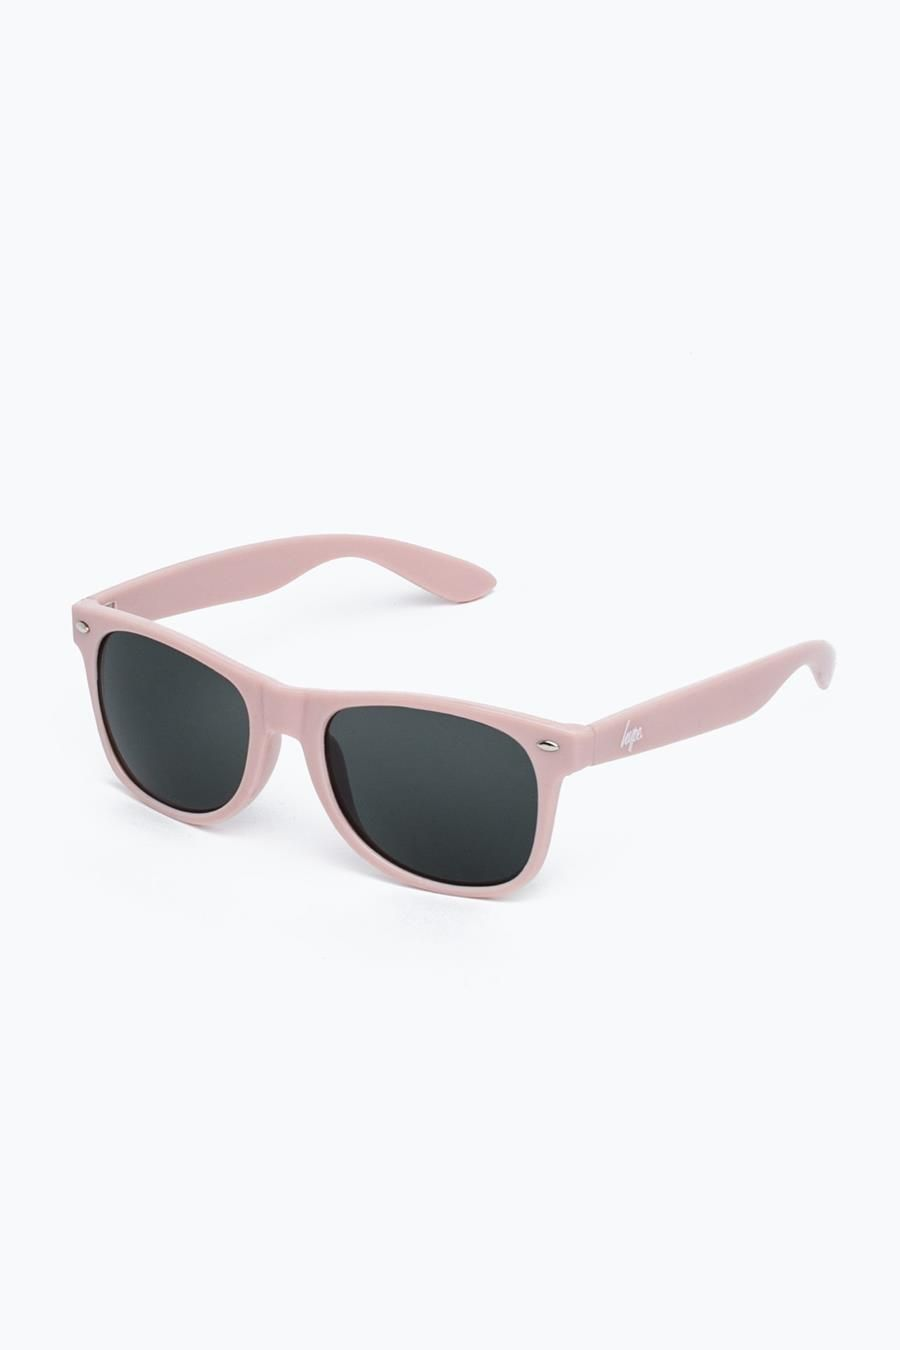 Hype Pink Pastel Sunglasses